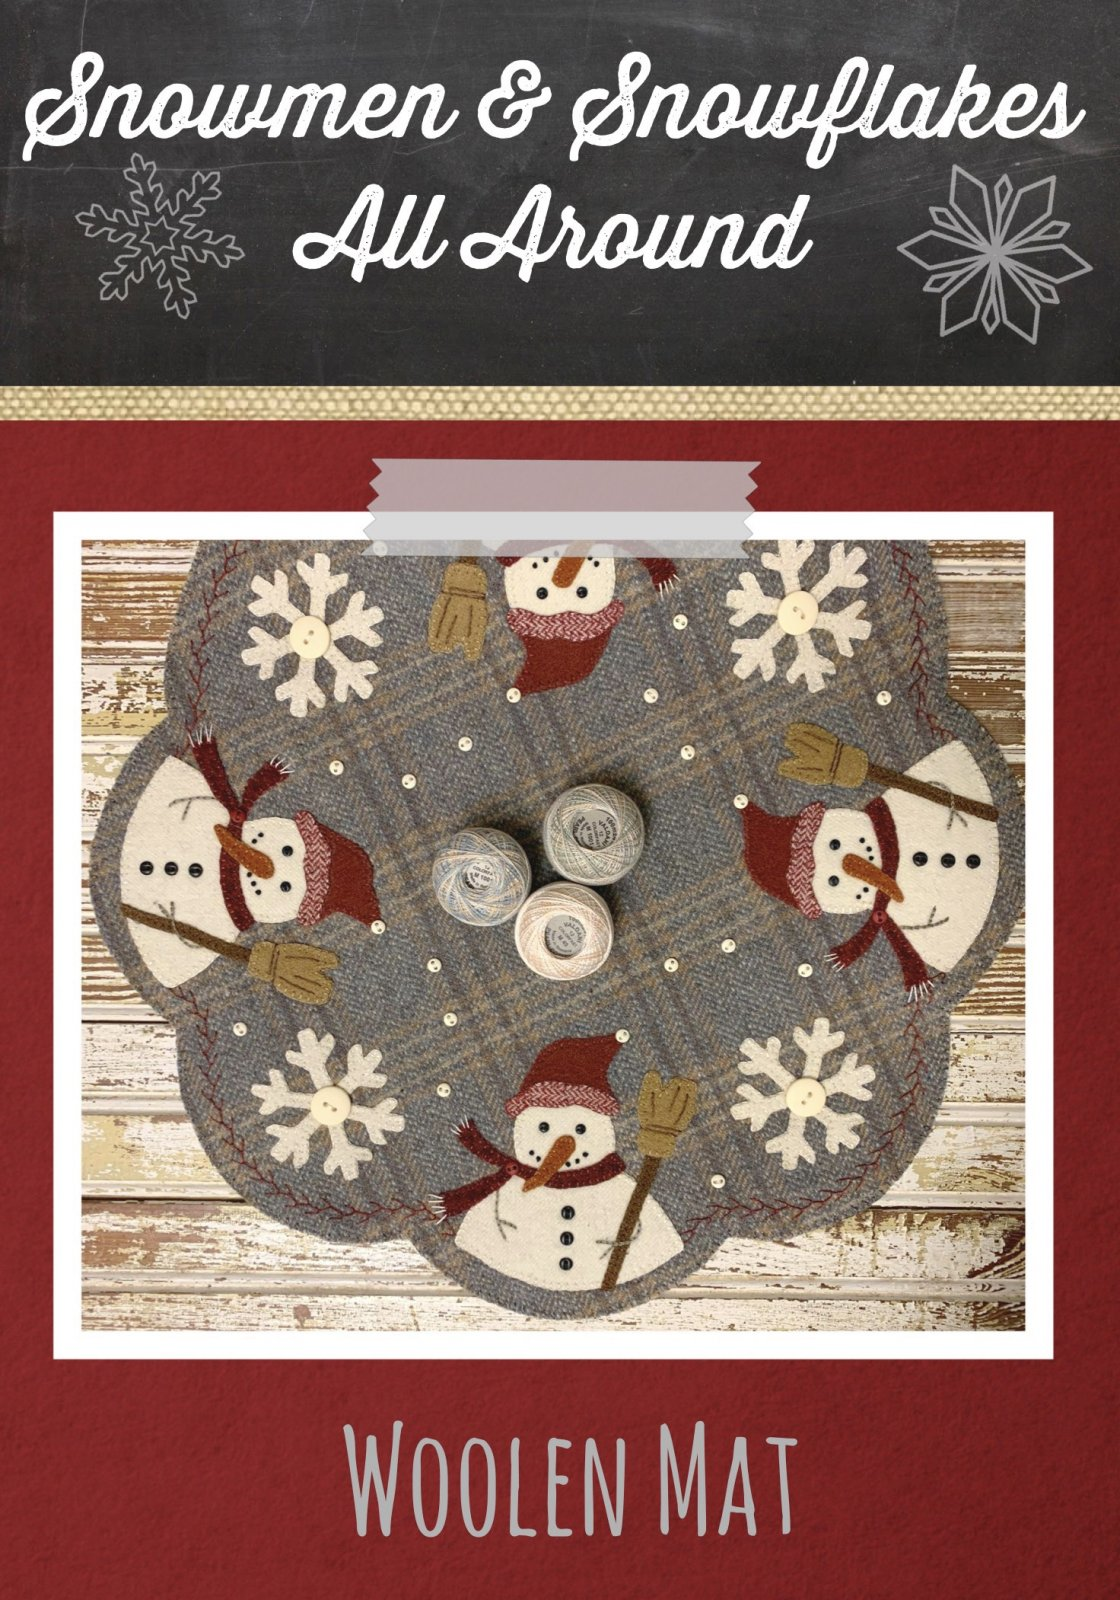 Snowmen & Snowflakes All Around Woolen Mat *Kit & Pattern